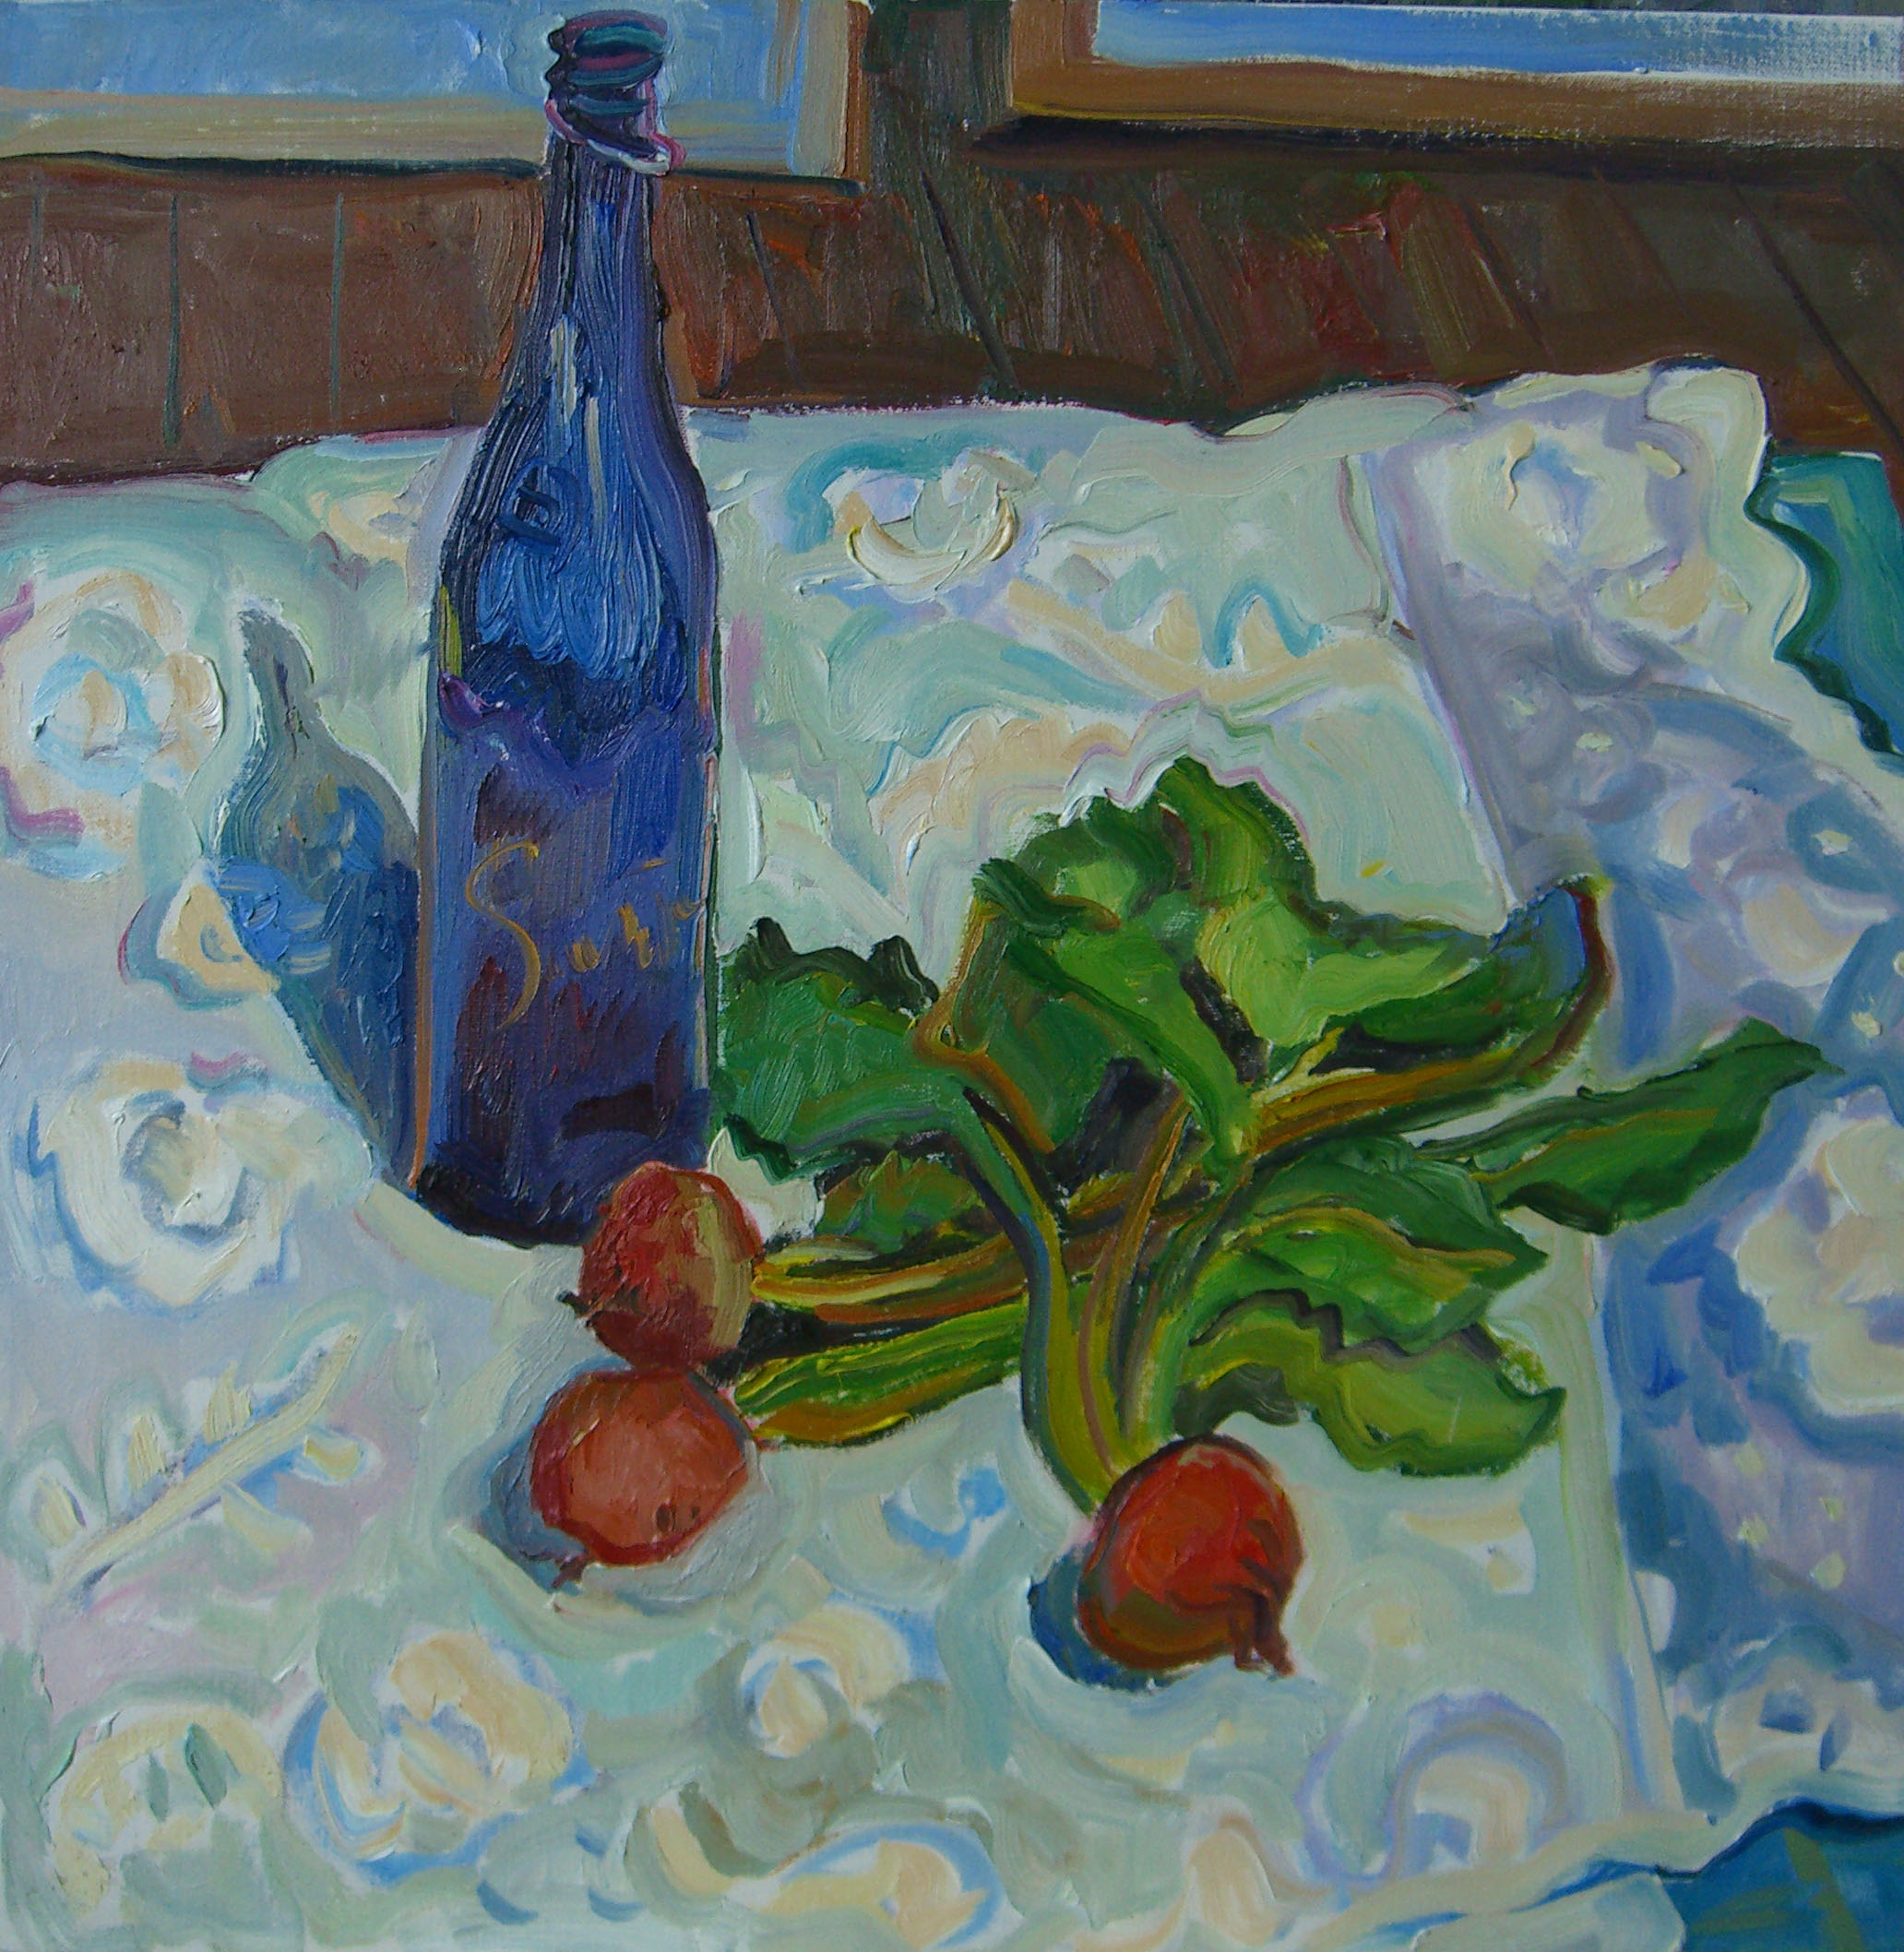 Blue Bottle  and Beets 24x24